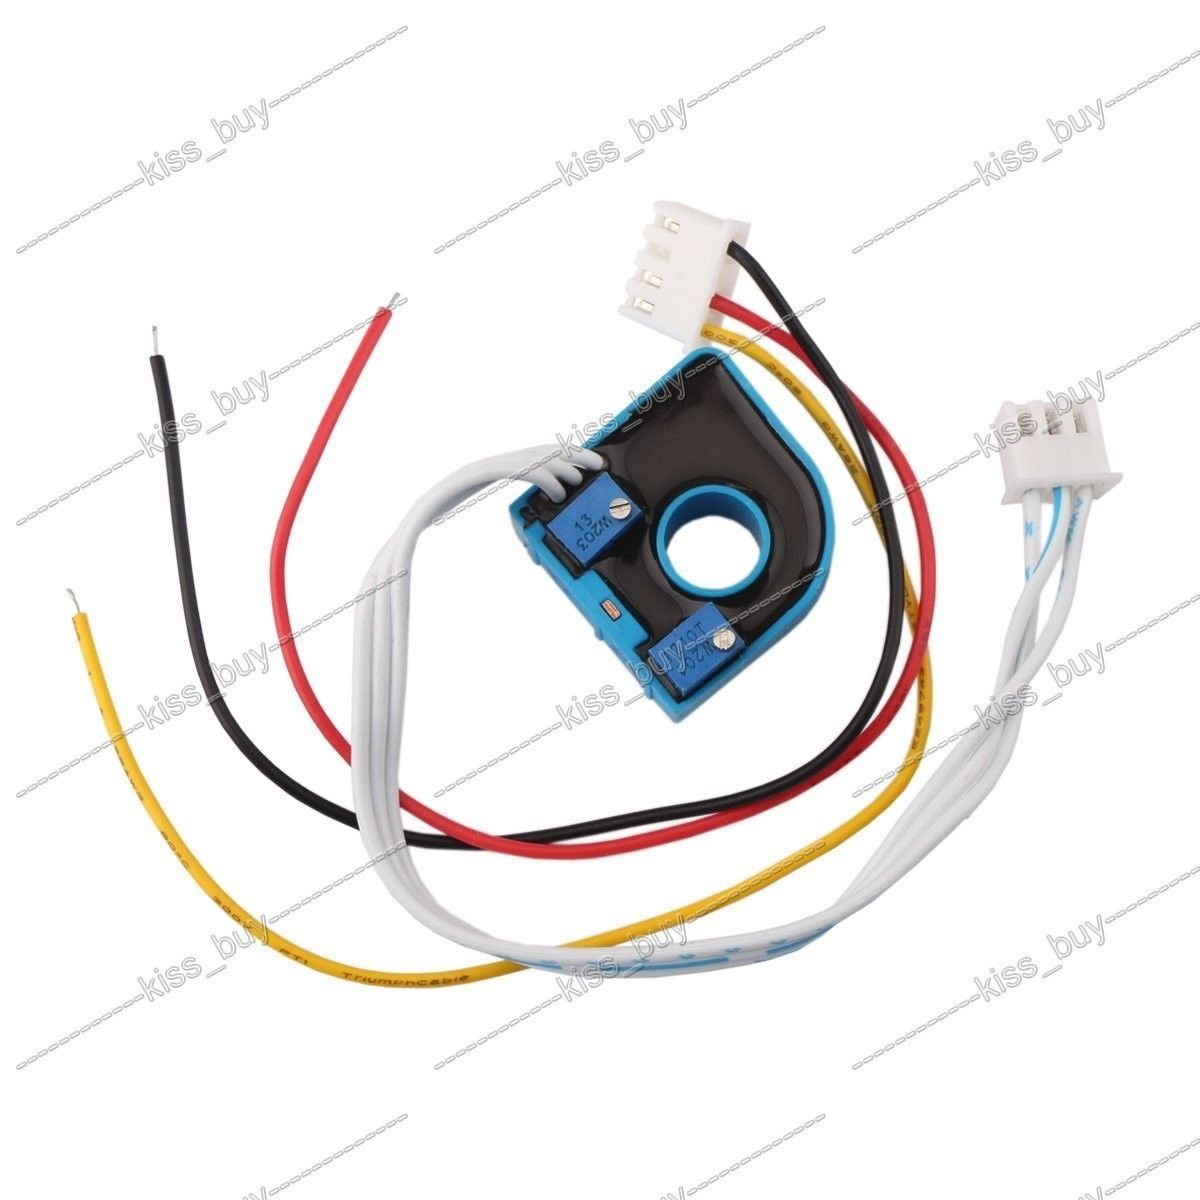 hight resolution of dc 0 600v 200a volt amp meter dual display voltage current 12v 24v car voltmeter ammeter charge discharge solar battery monitor in integrated circuits from